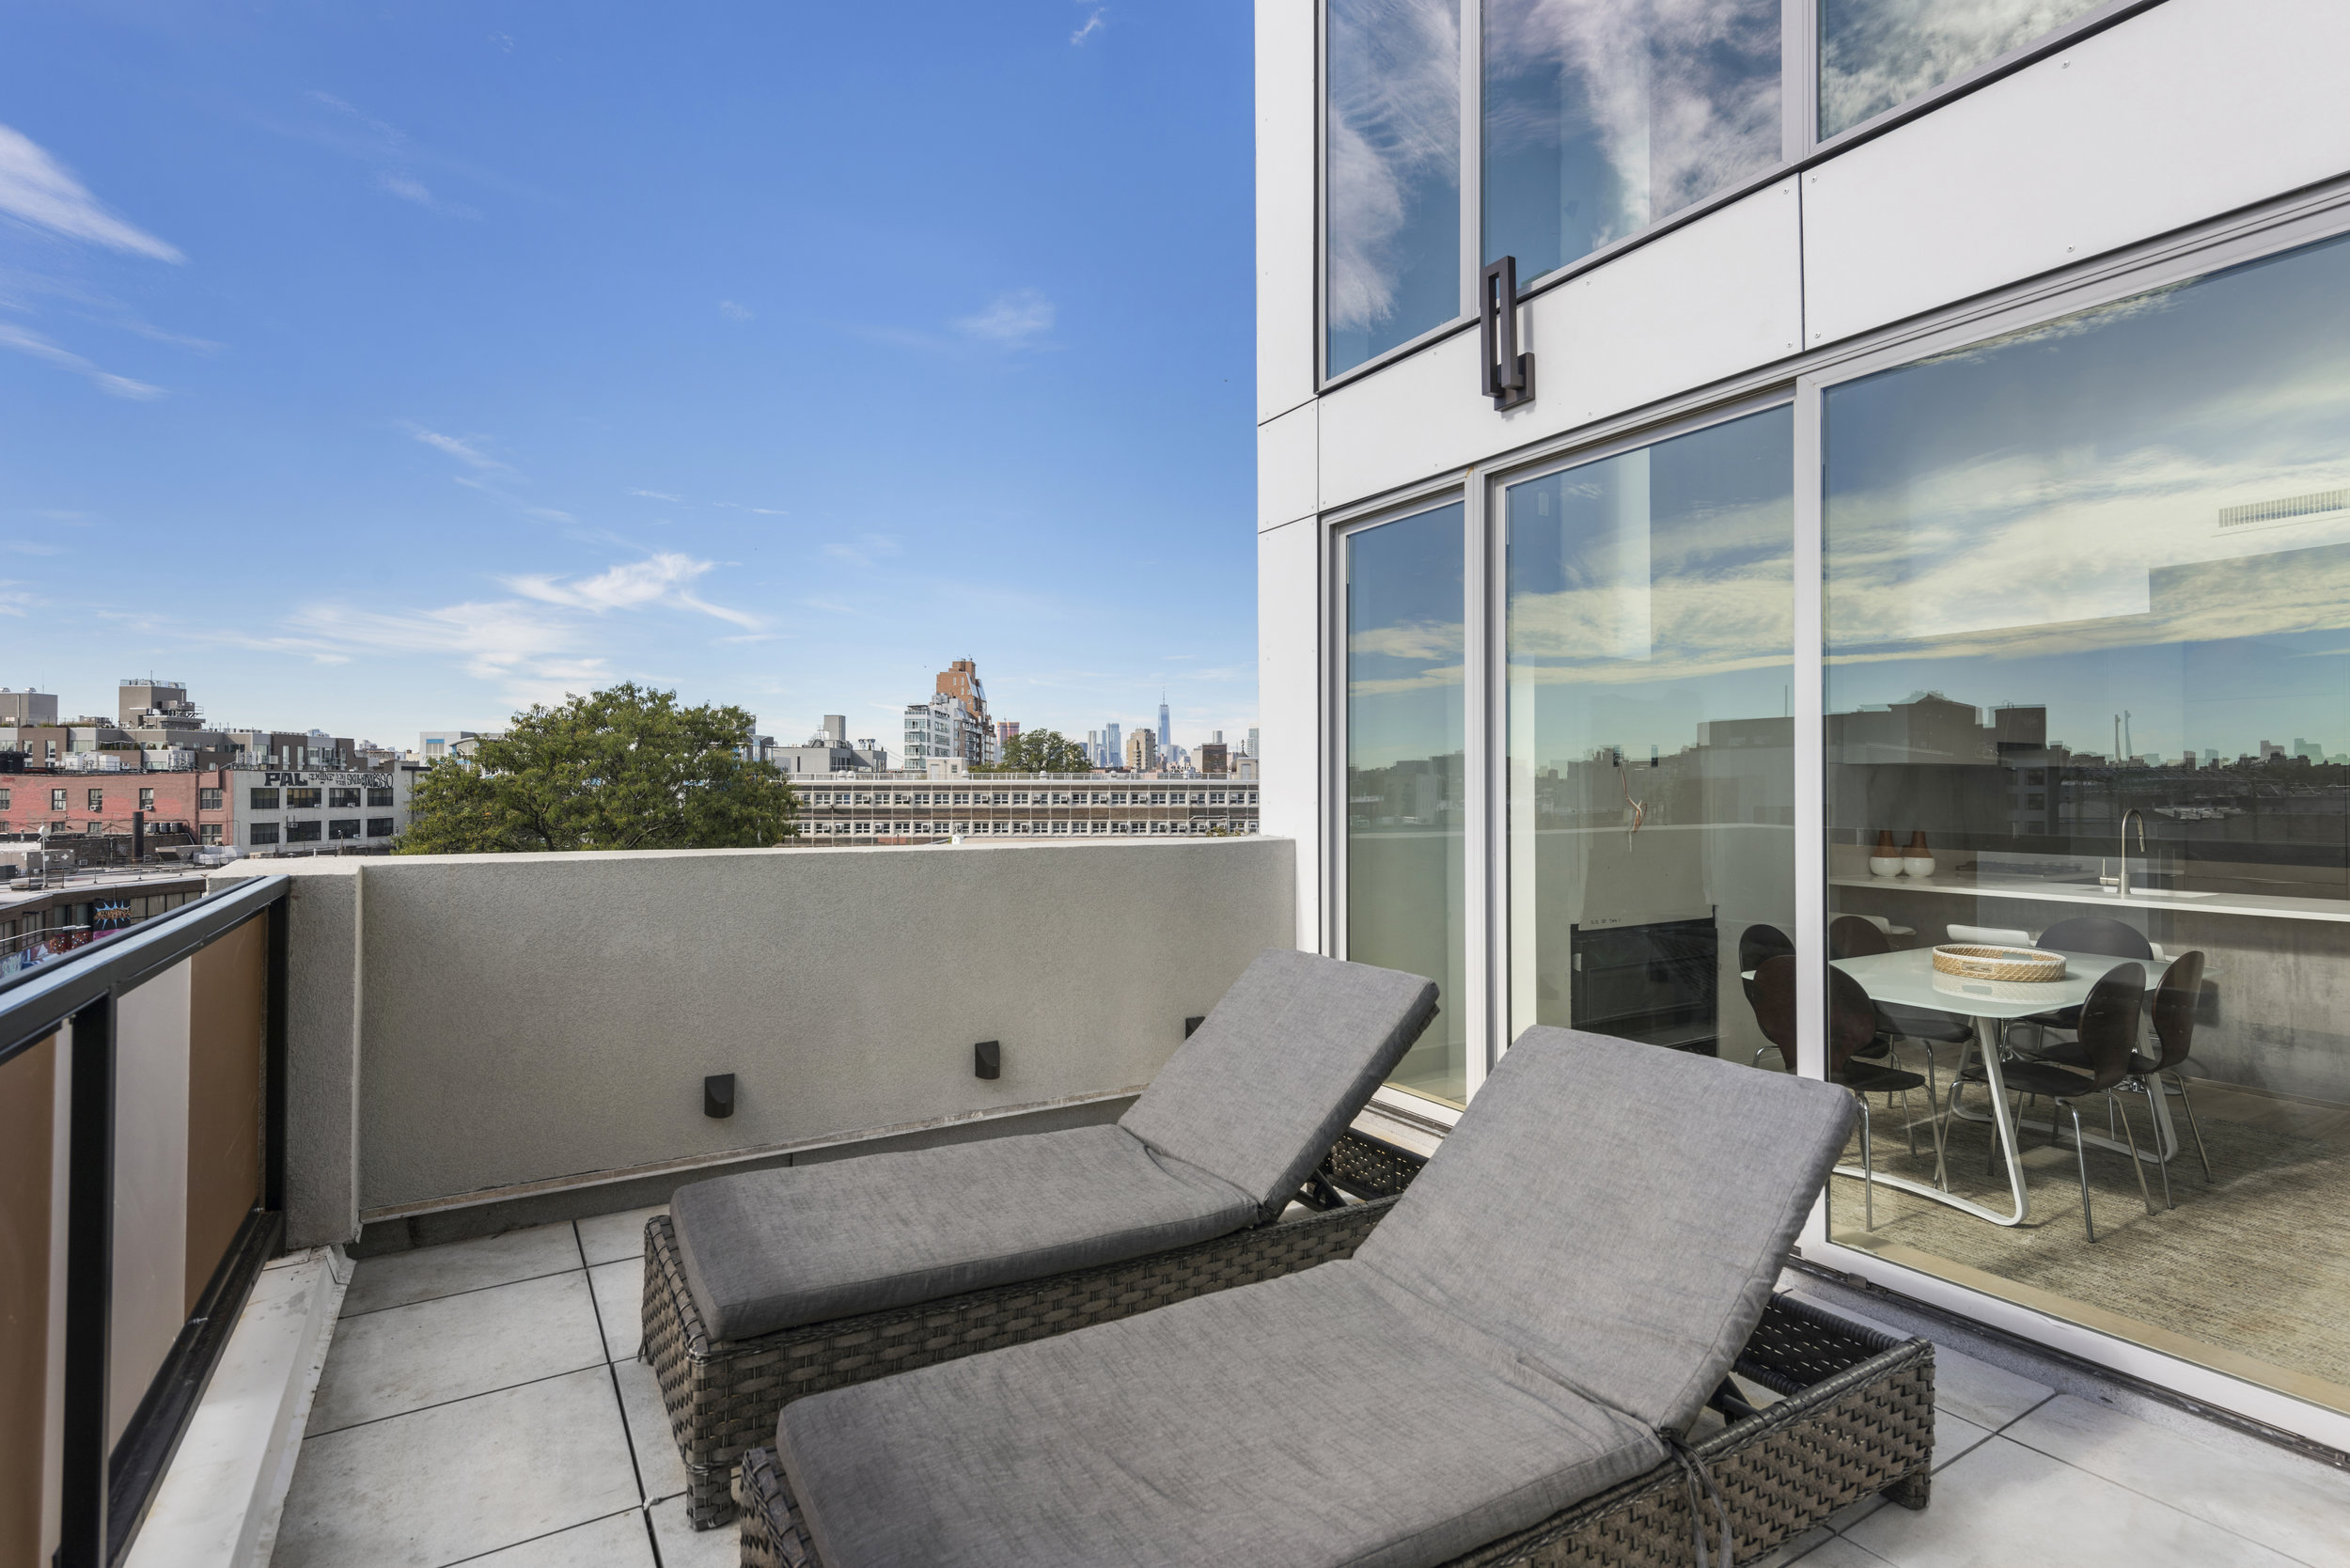 Rooftop Access in NYC